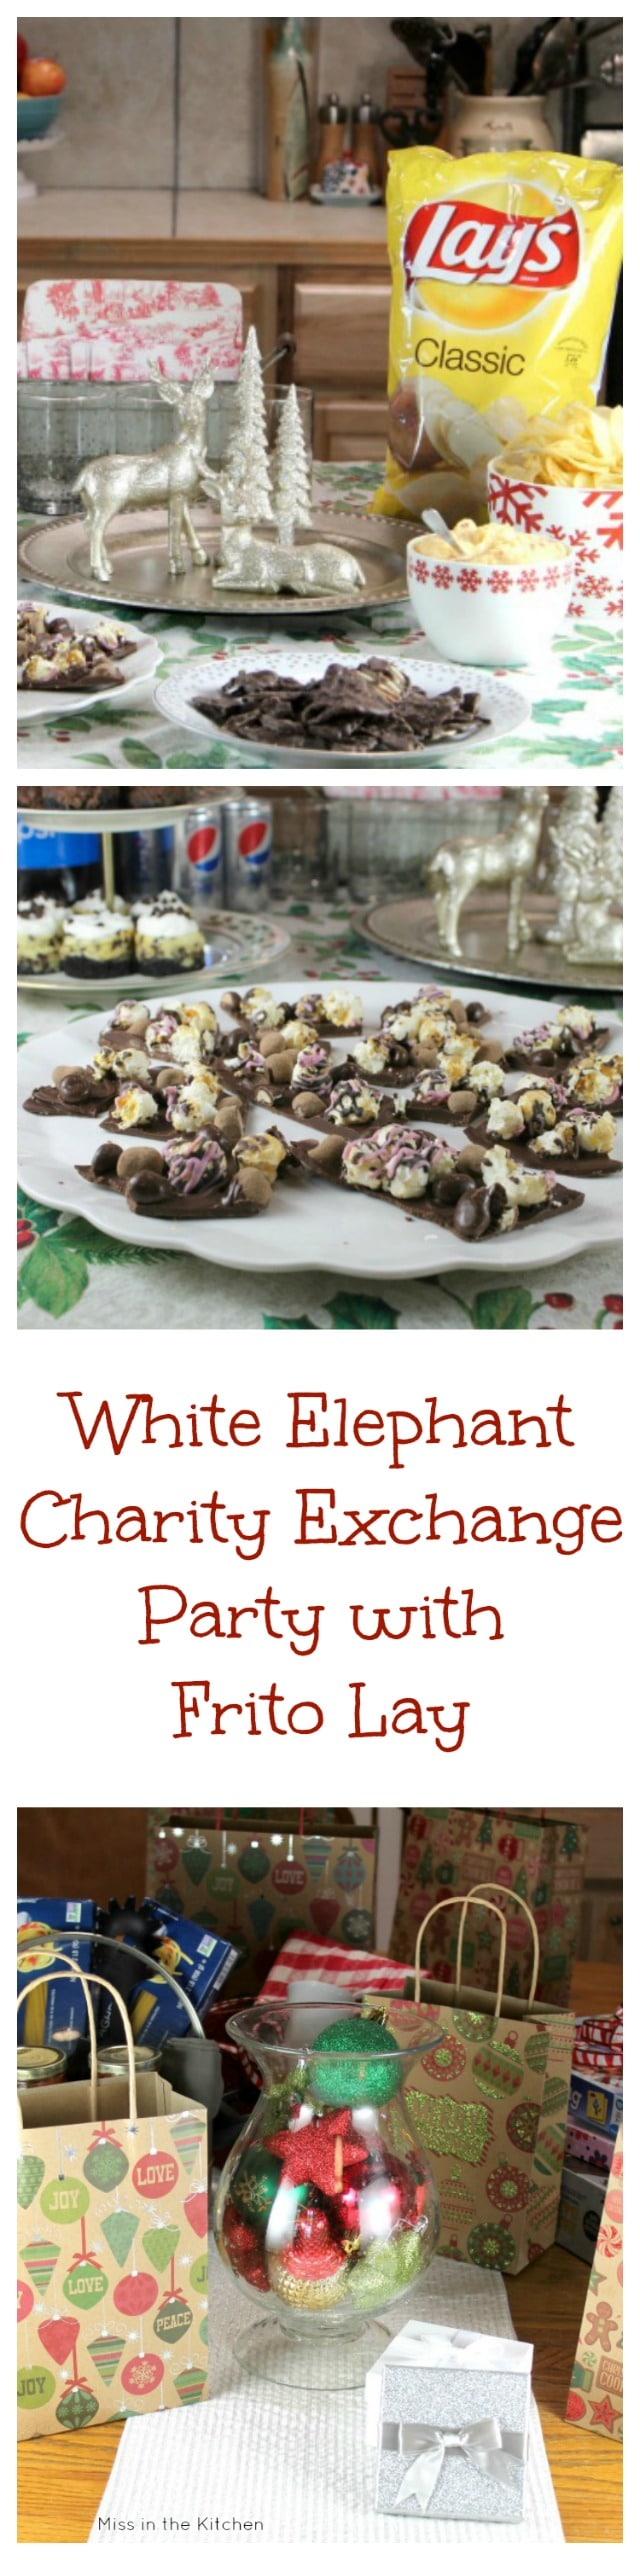 White Elephant Charity Exchange Party from MissintheKitchen with Frito Lay #ad